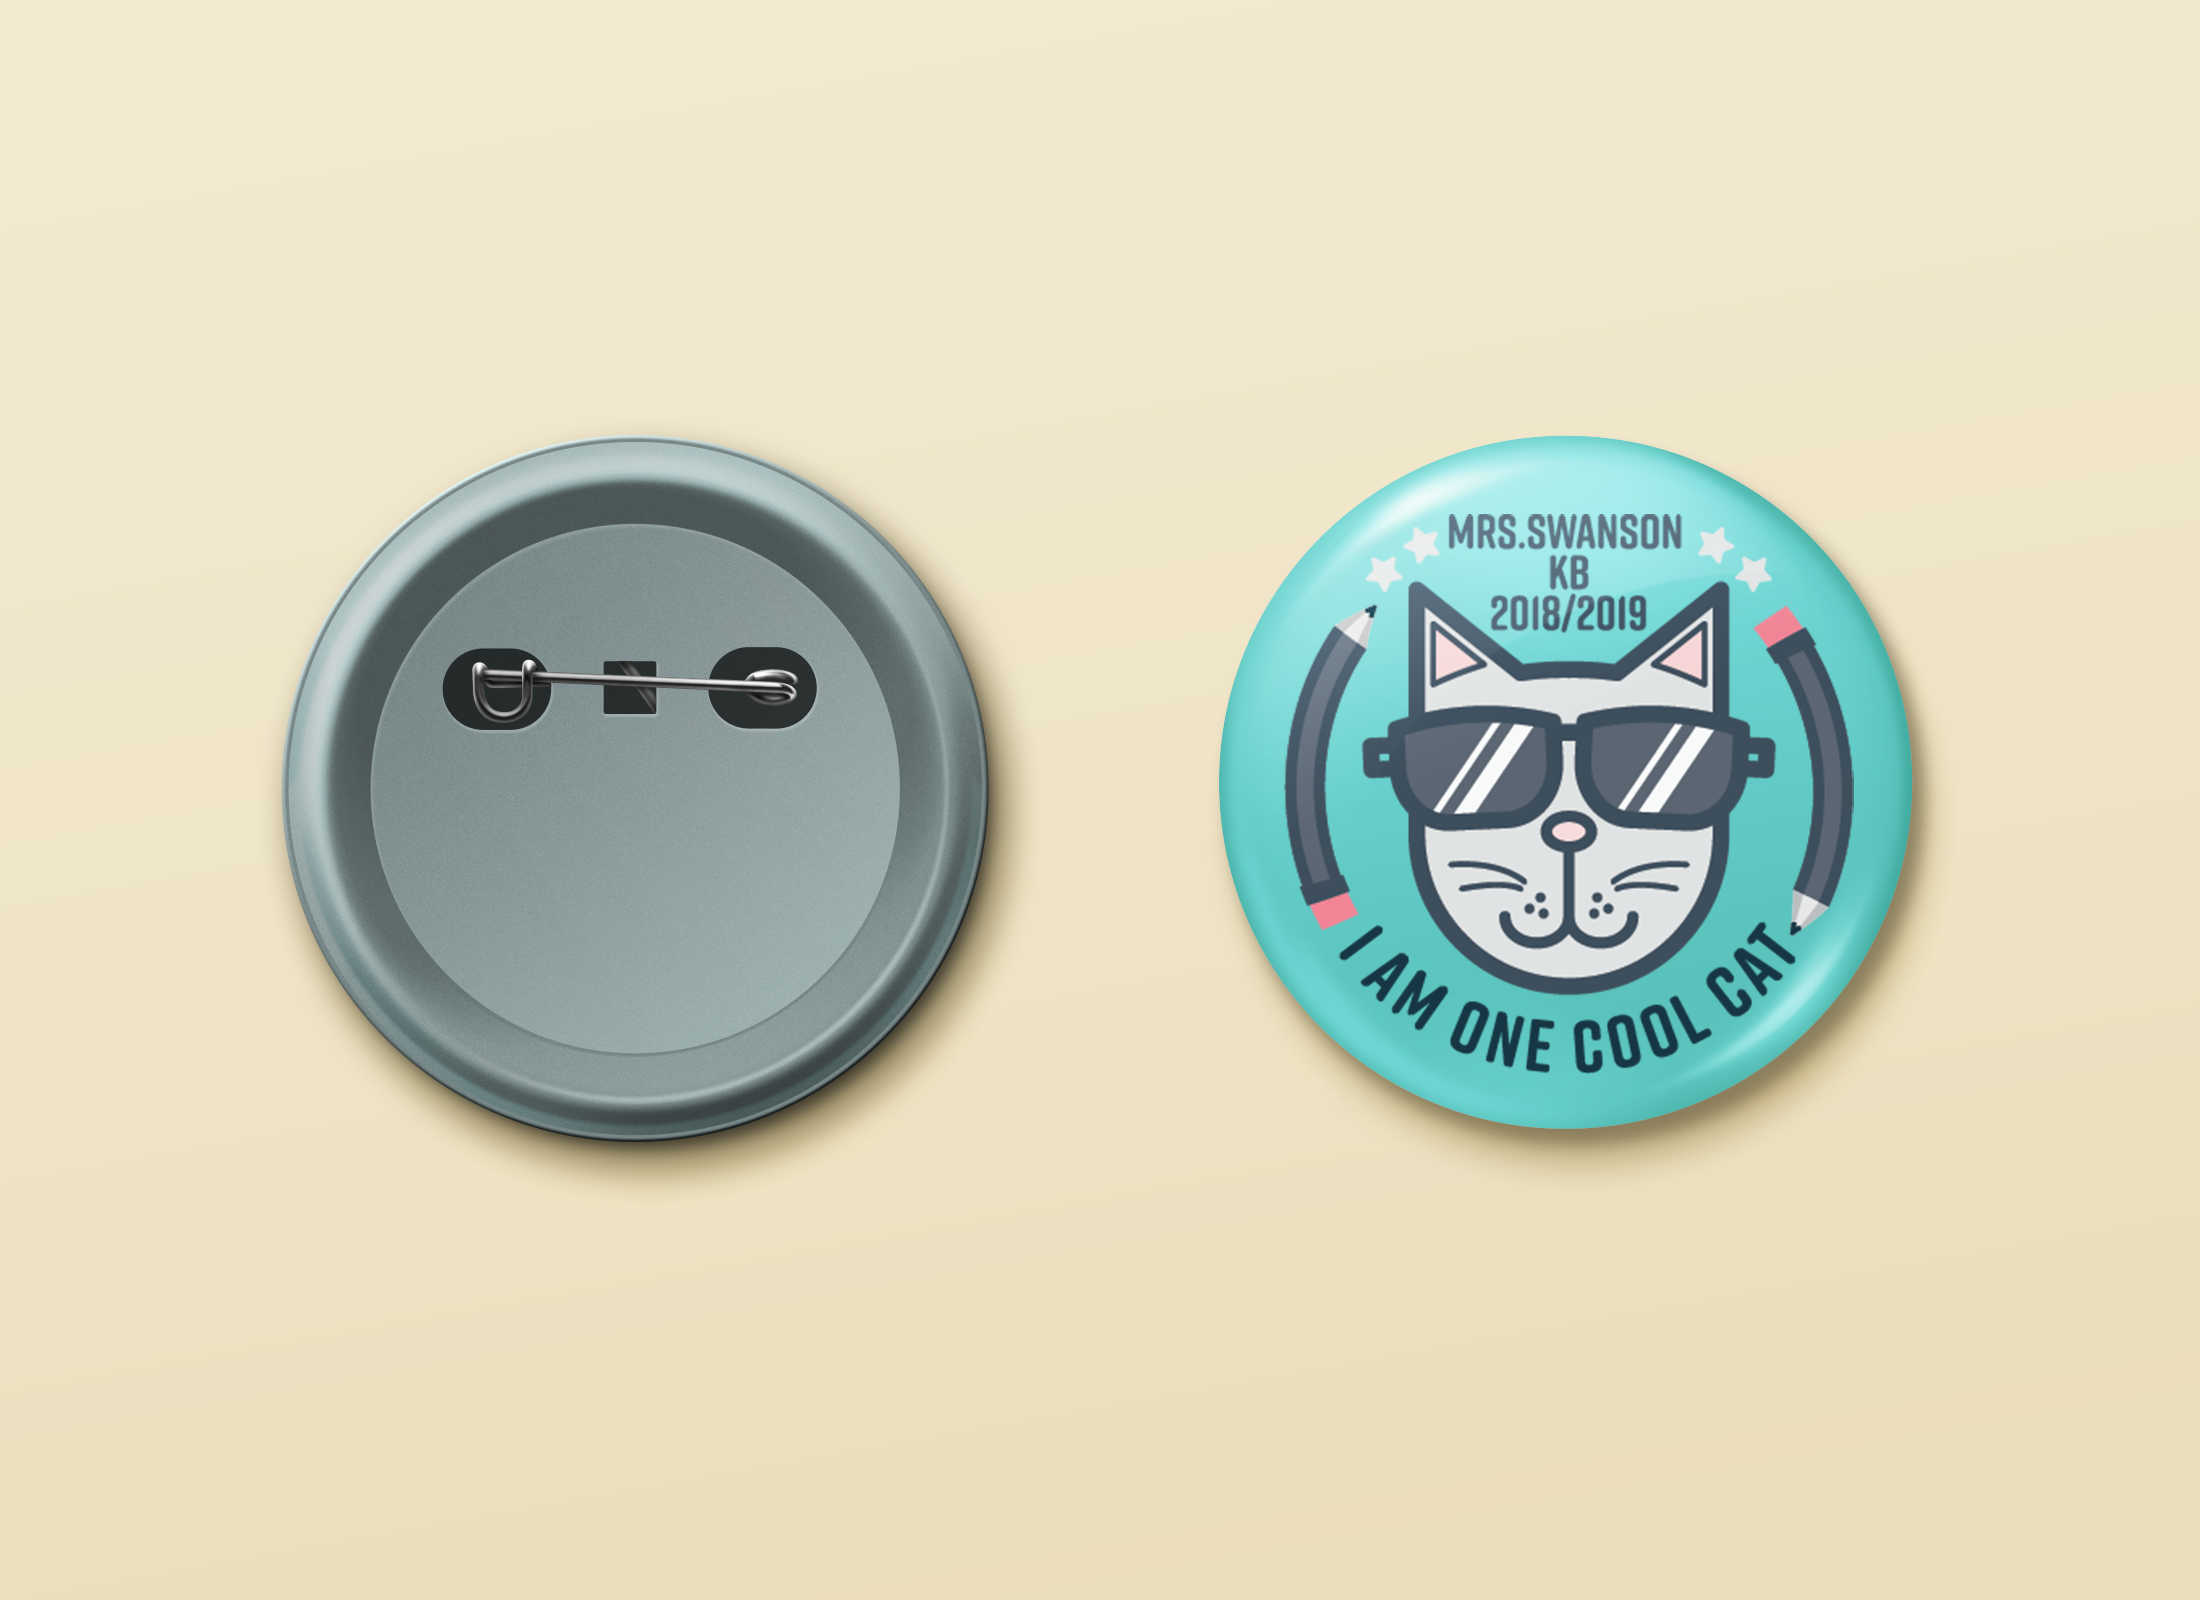 LCCS_swanson_cat_button_mockup.png